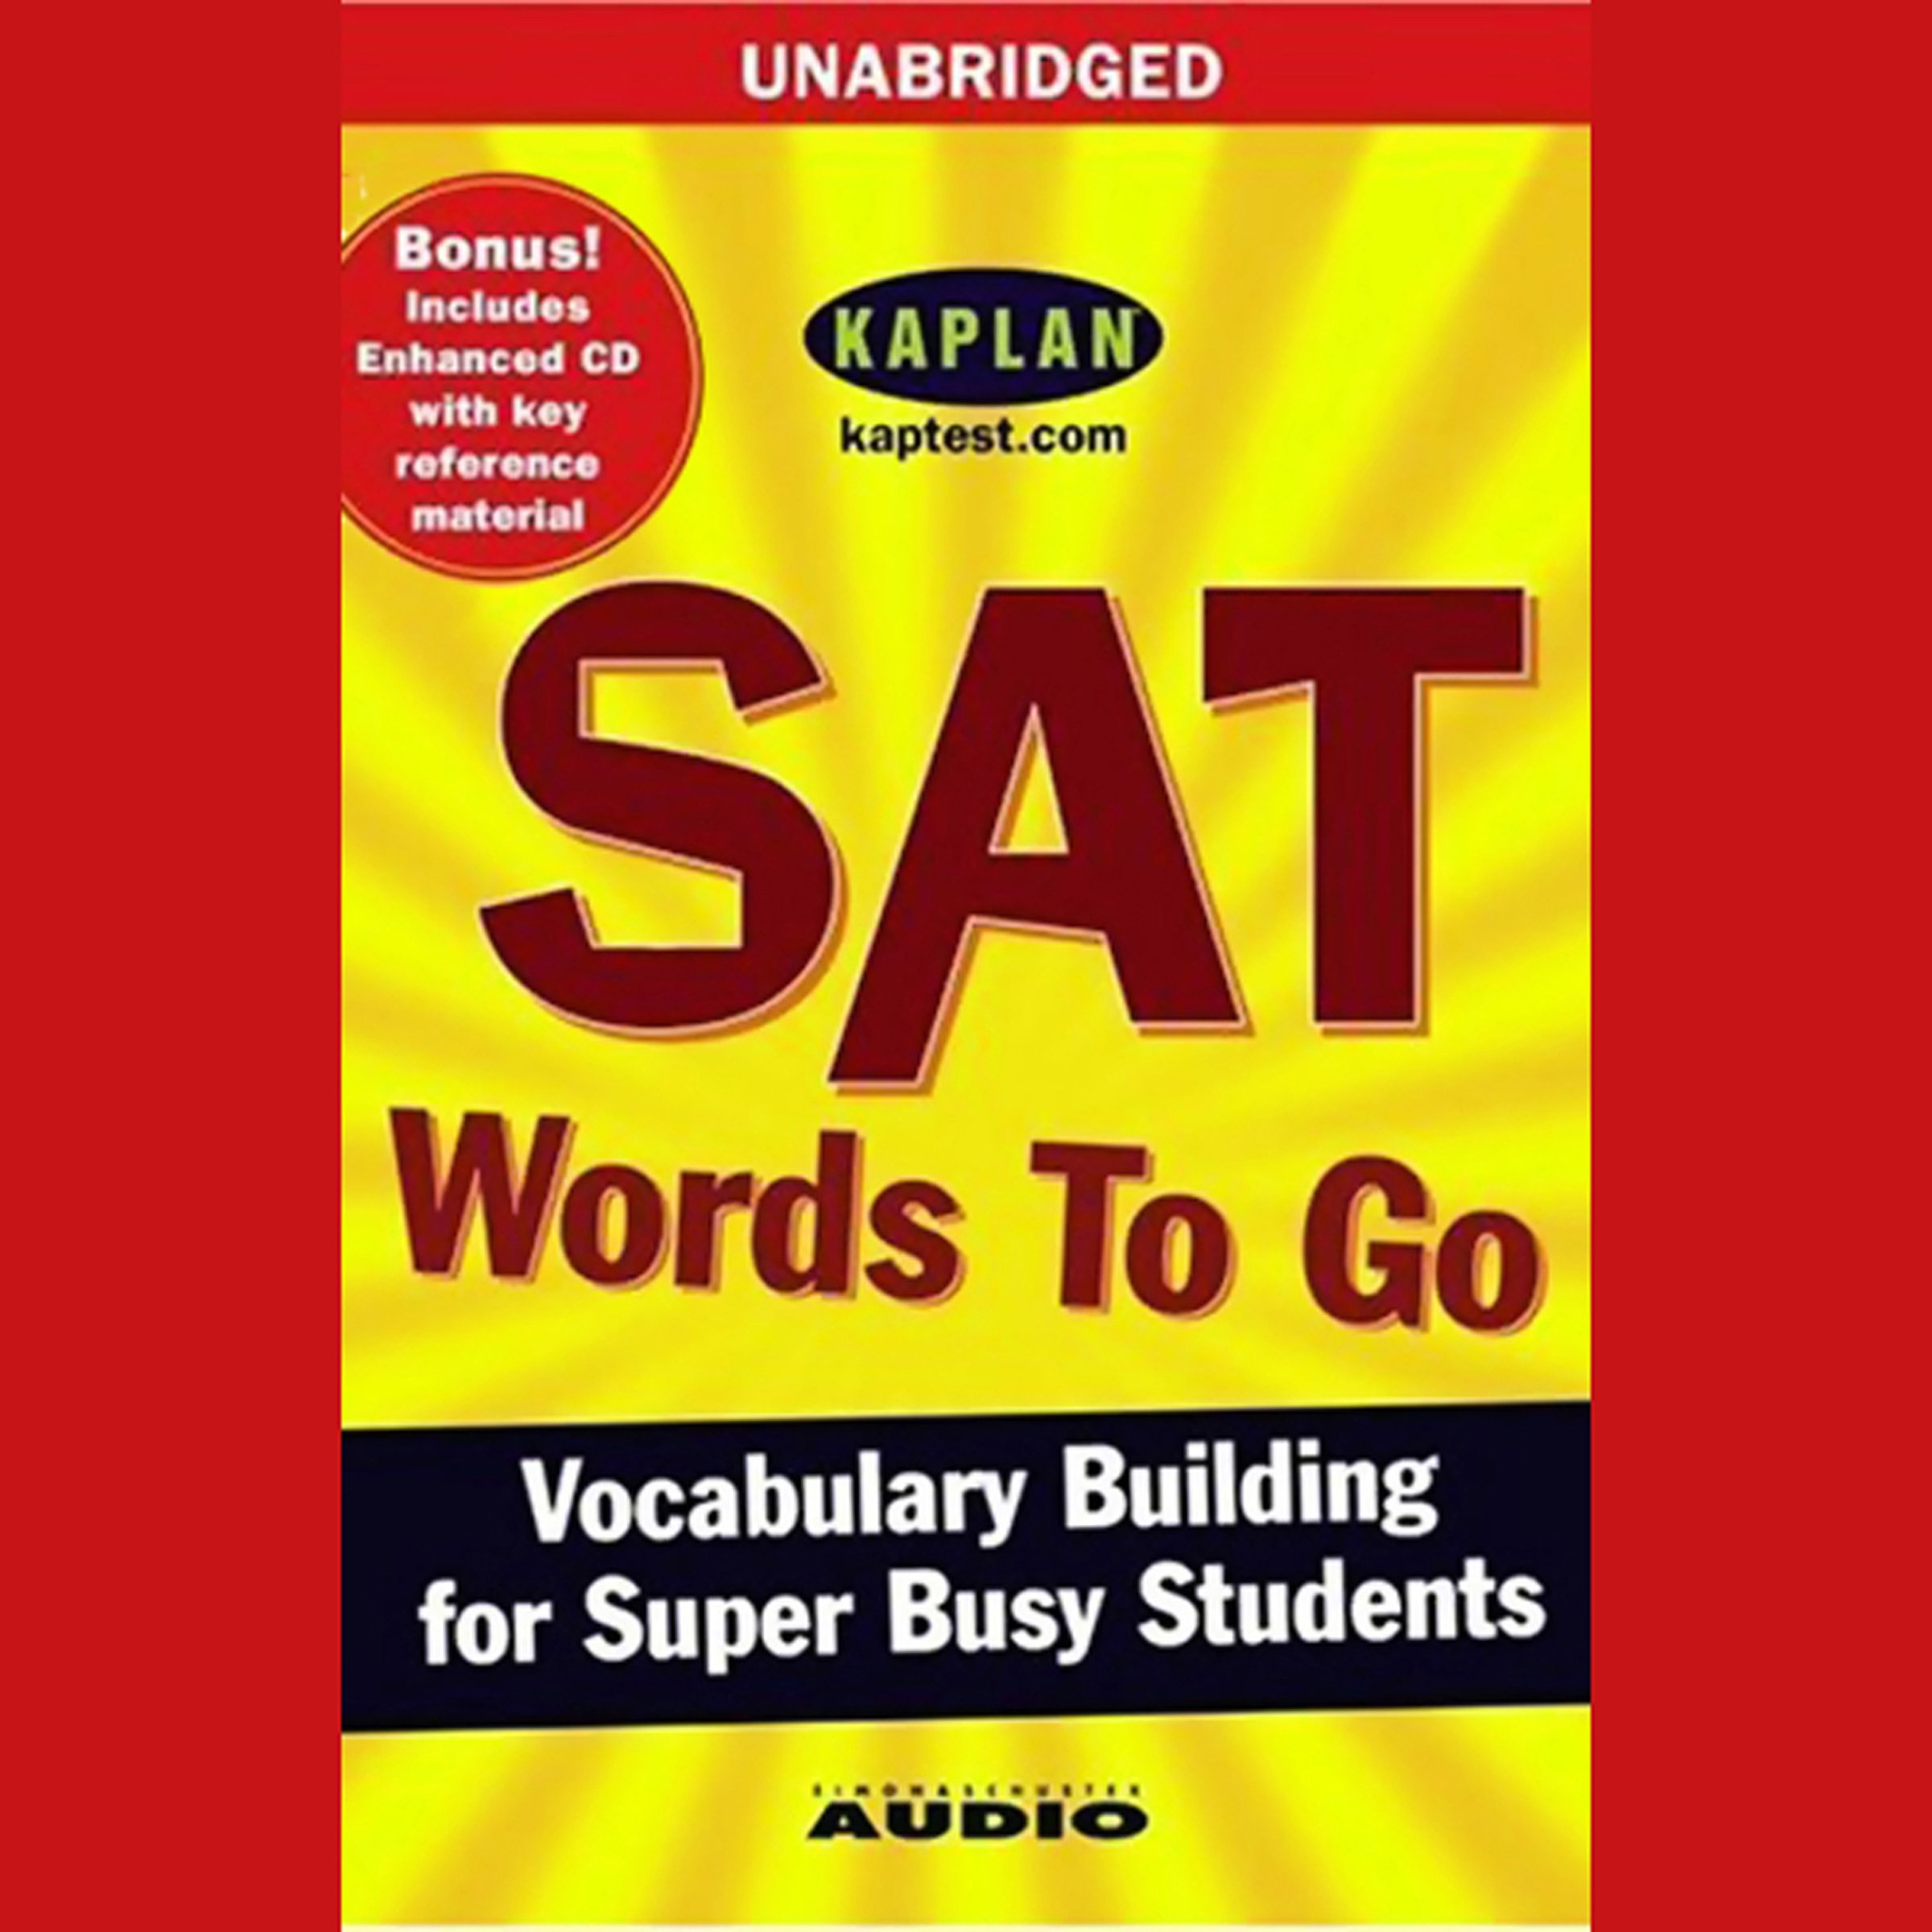 SAT Words to Go: Vocabulary Building for Super Busy Students